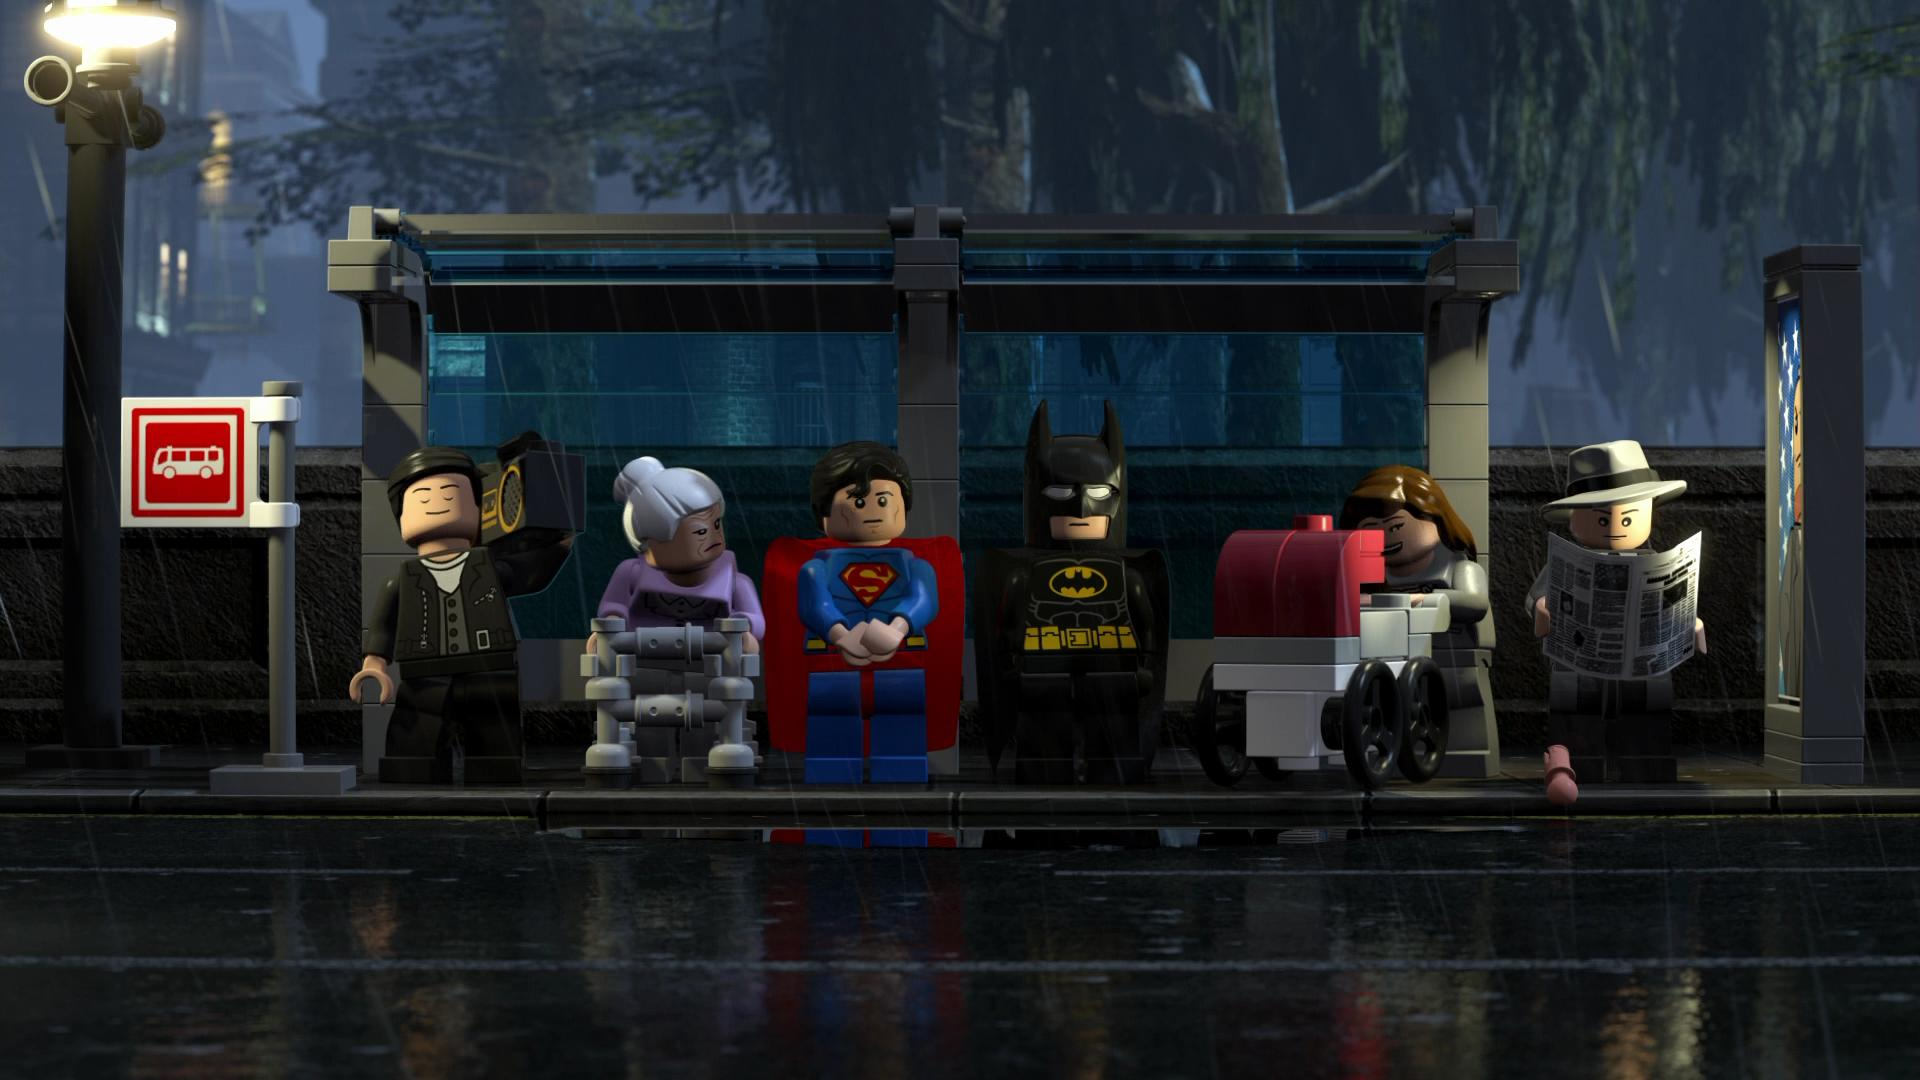 Lego Batman The Movie Wallpaper Images & Pictures - Becuo